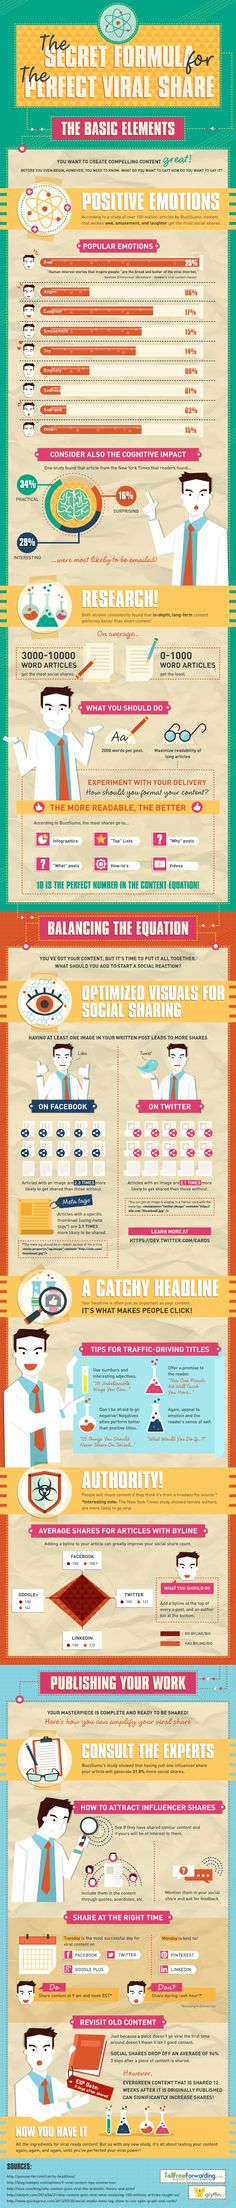 The Secret Formula for the Perfect Viral Post #infographic #socialmedia #Facebook #Twitter #GooglePlus